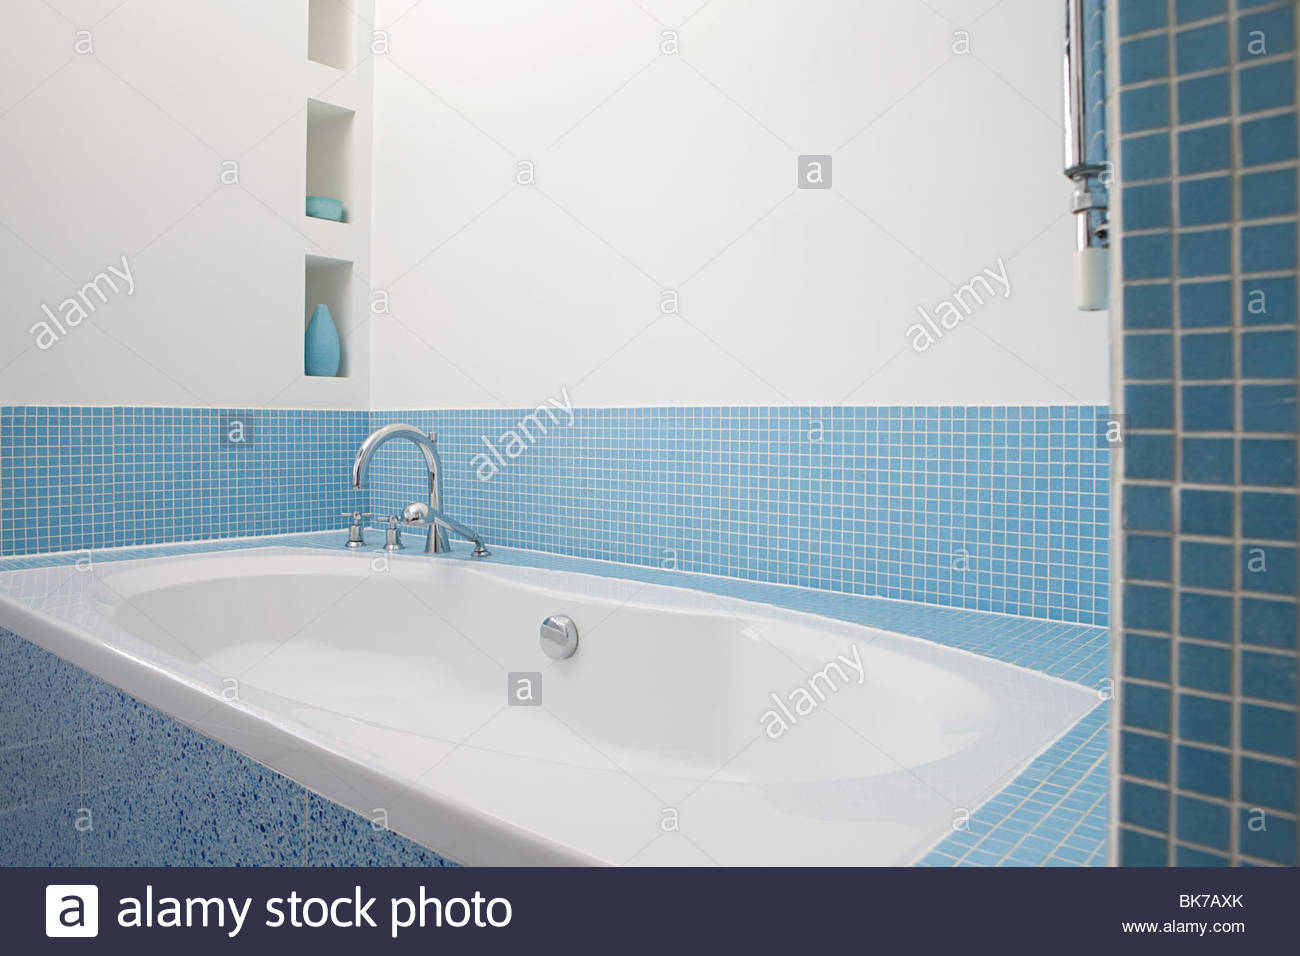 Contemporary Bathtubs Stock Photos & Contemporary Bathtubs Stock ...